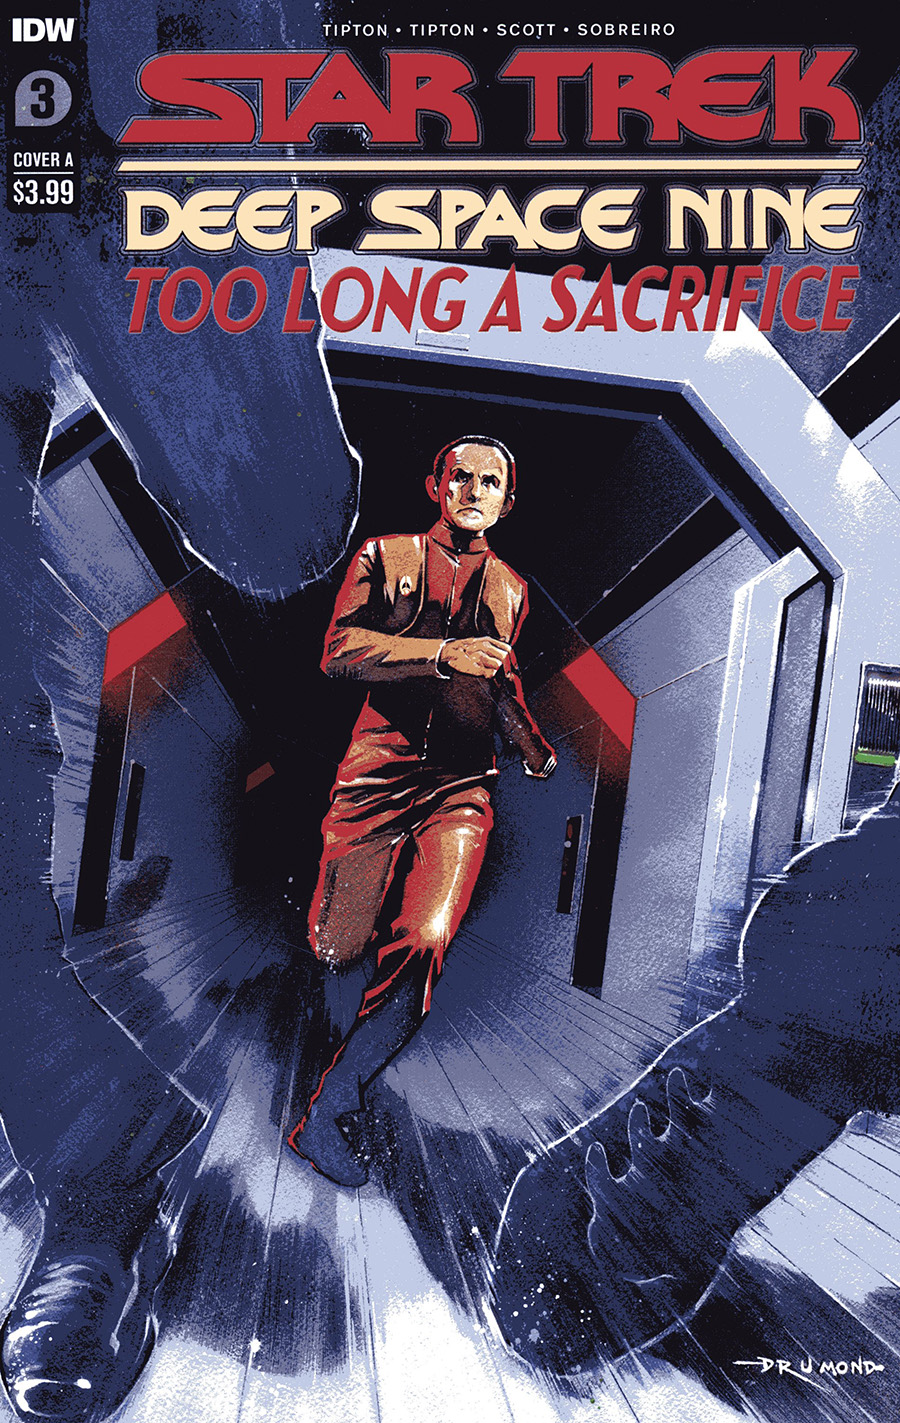 Star Trek Deep Space Nine Too Long A Sacrifice #3 Cover A Regular Ricardo Drummond Cover